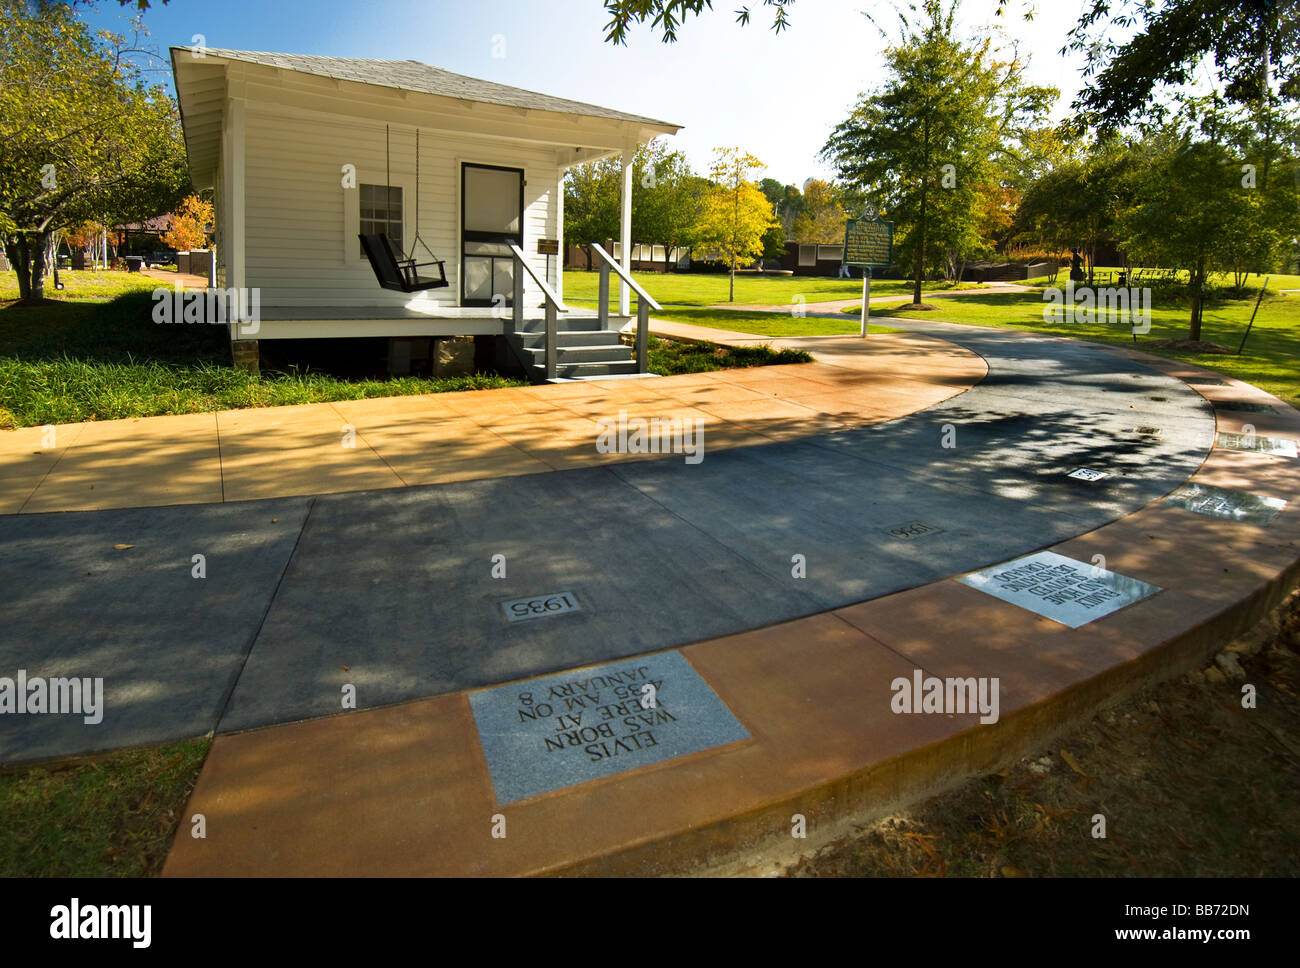 Birthplace of Elvis Presley in Tupelo Mississippi where he lived until he was 13 years old - Stock Image